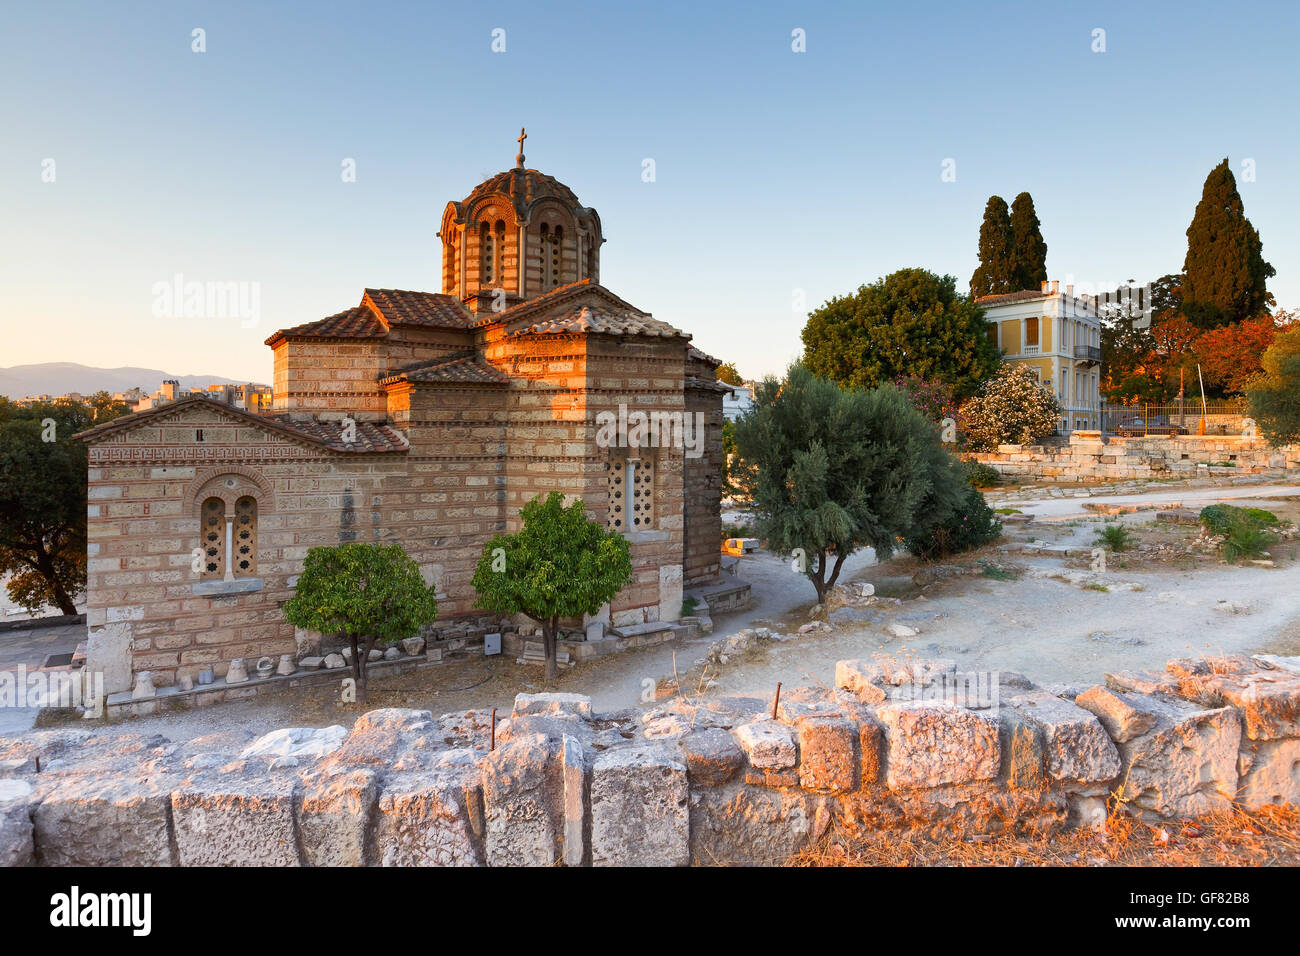 Greek church in the site of the ancient Agora in Athens. - Stock Image